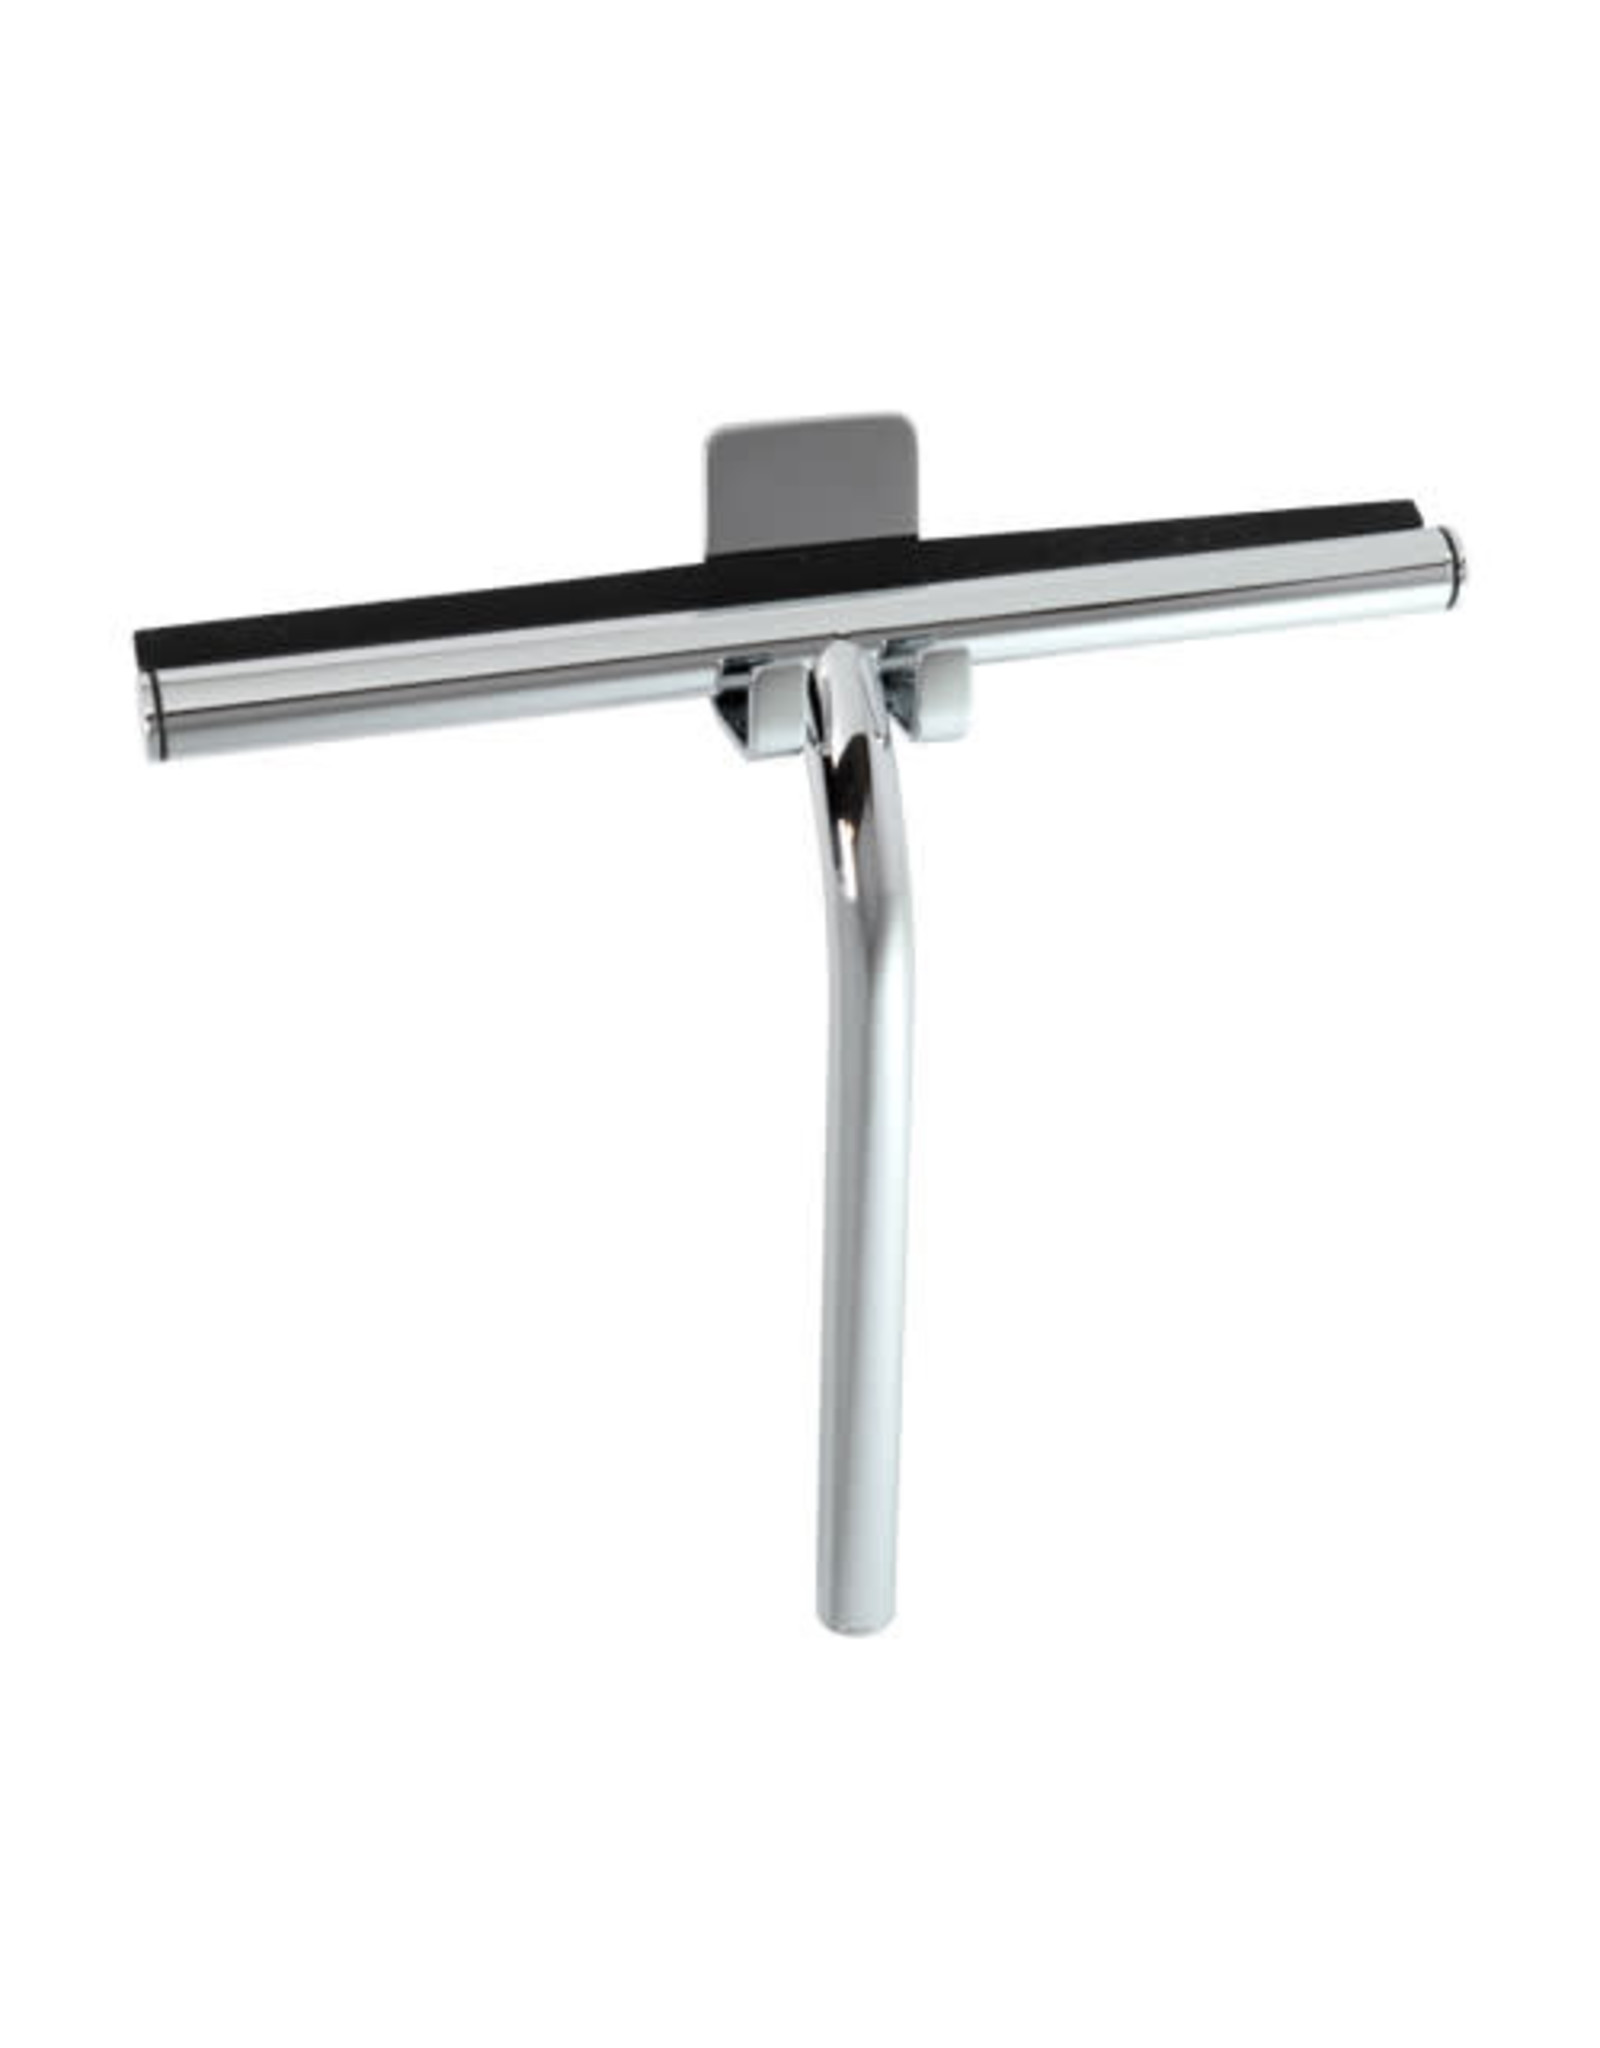 LalOO Laloo Shower Squeegee